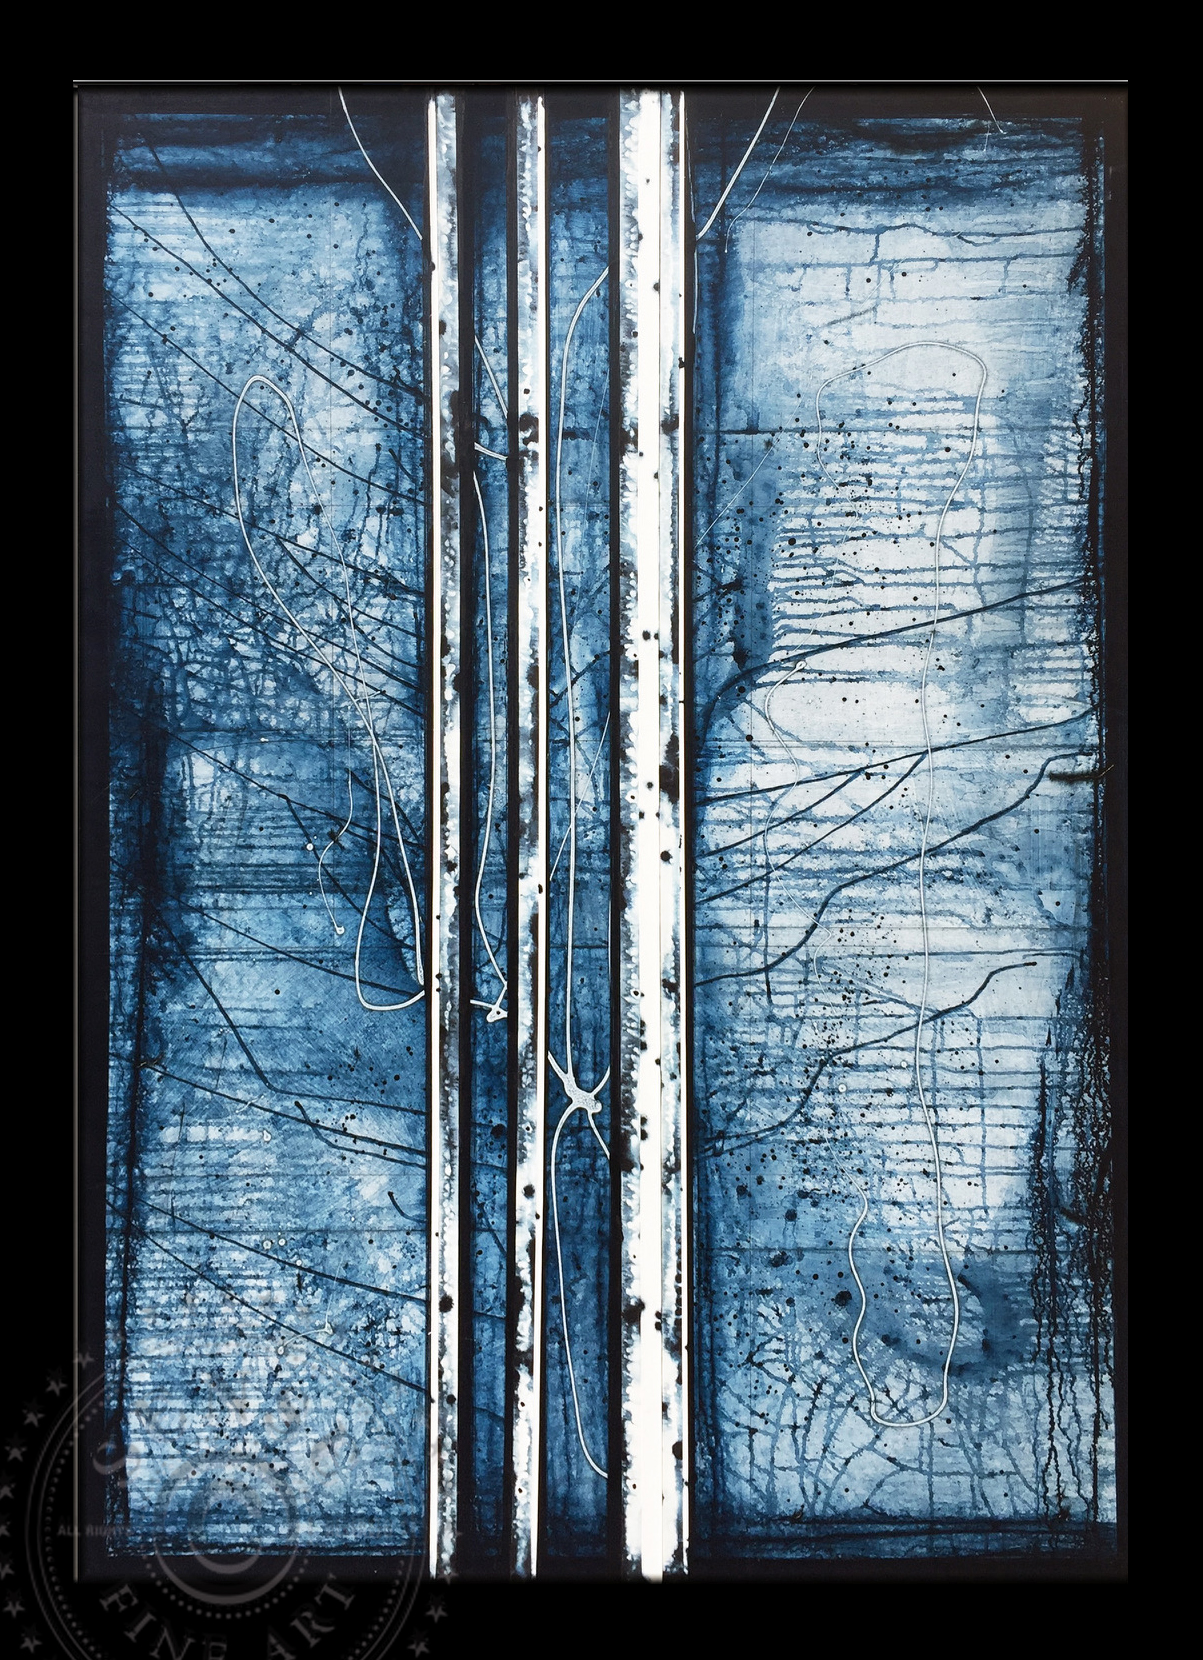 SENSE_fine_art_Kessler_revealed(3)_77x55in